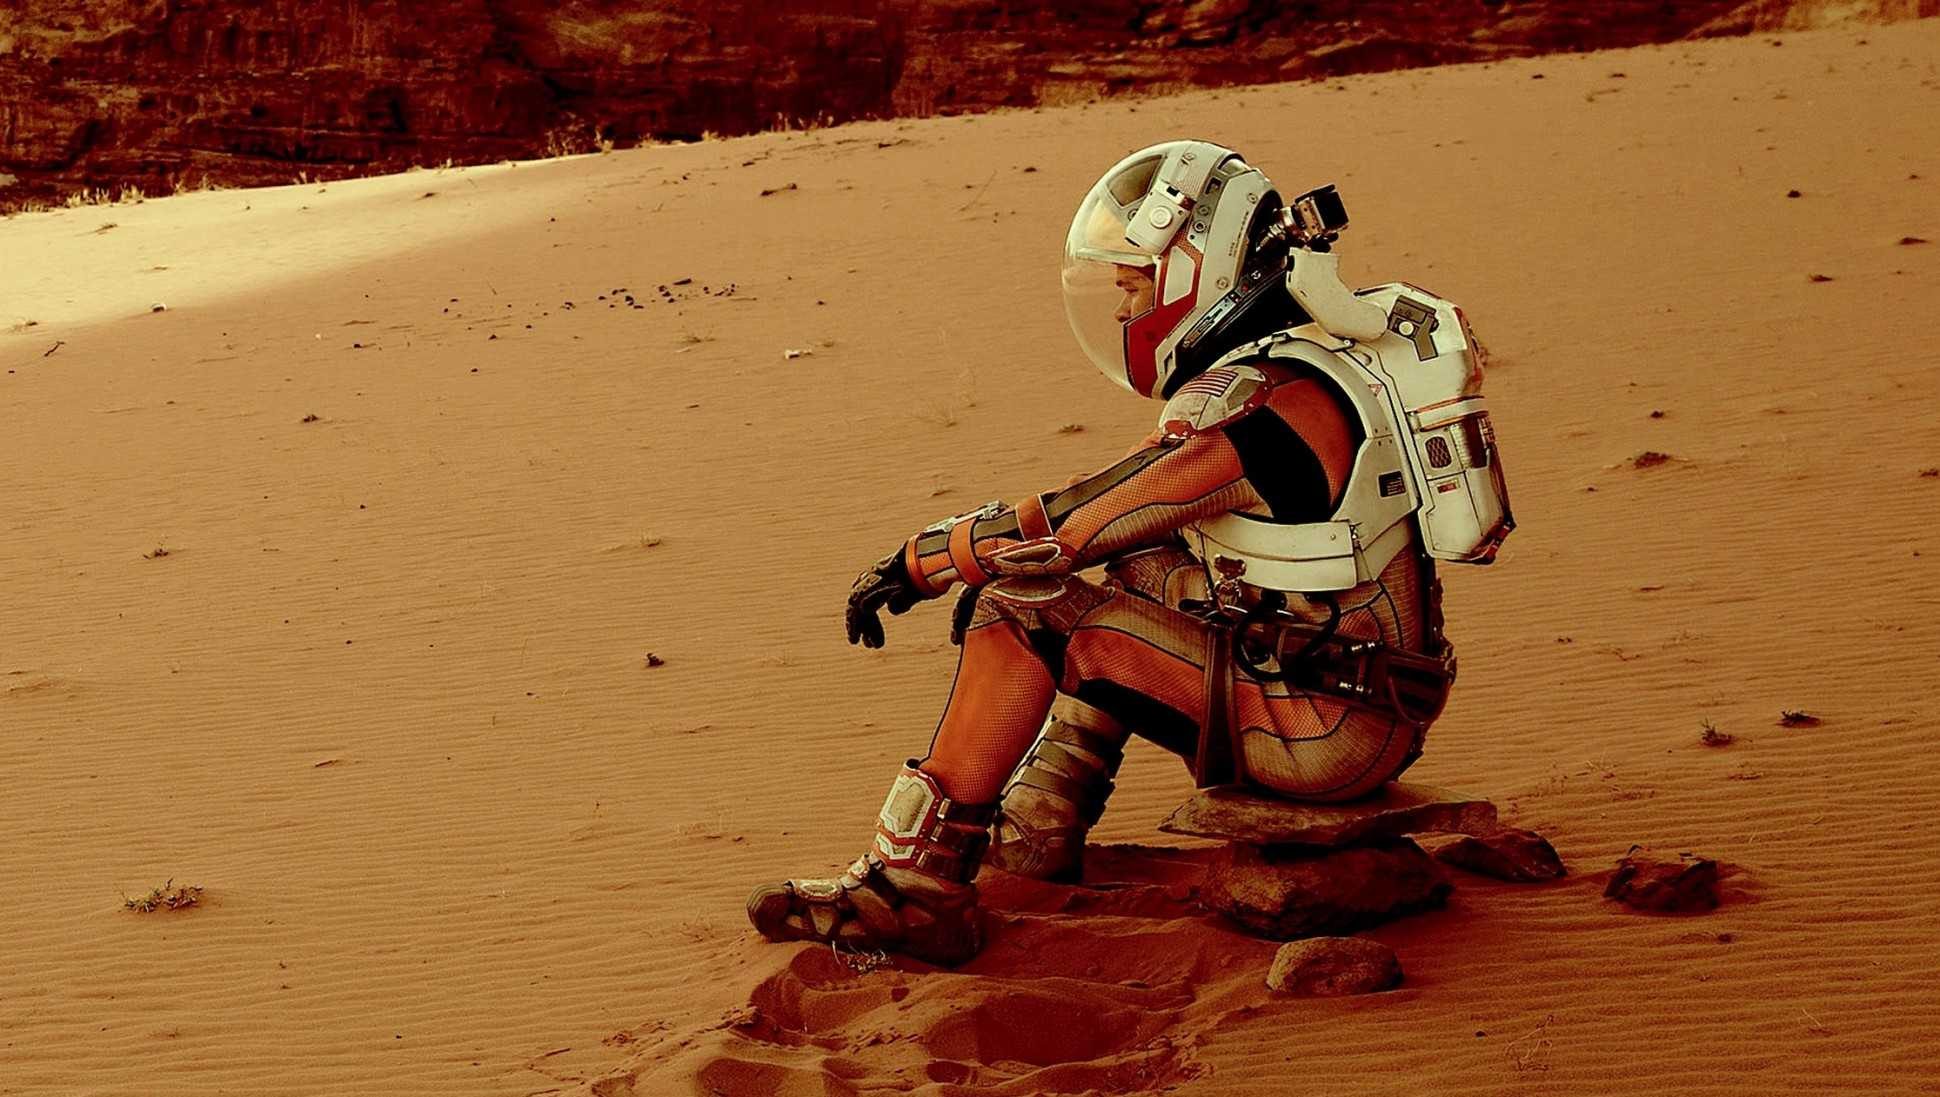 http://blogs-images.forbes.com/erikkain/files/2015/10/The-Martian-Matt-Damon.jpg